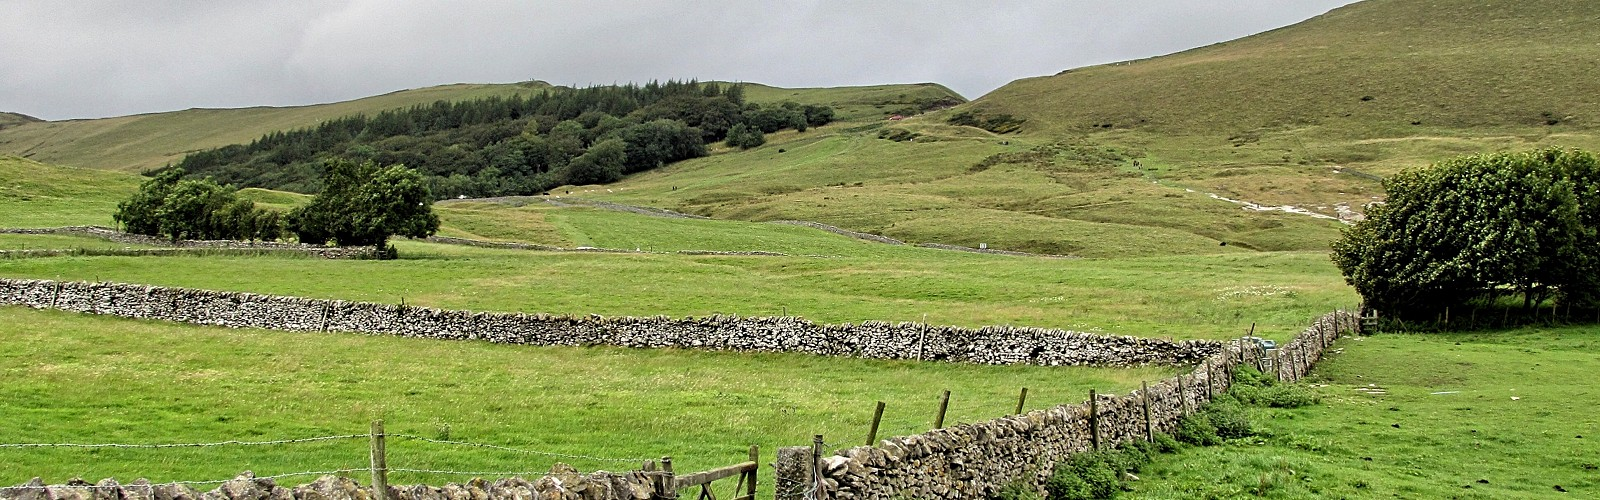 dry stone walls in Hope Valley (image: Magda V on unsplash)